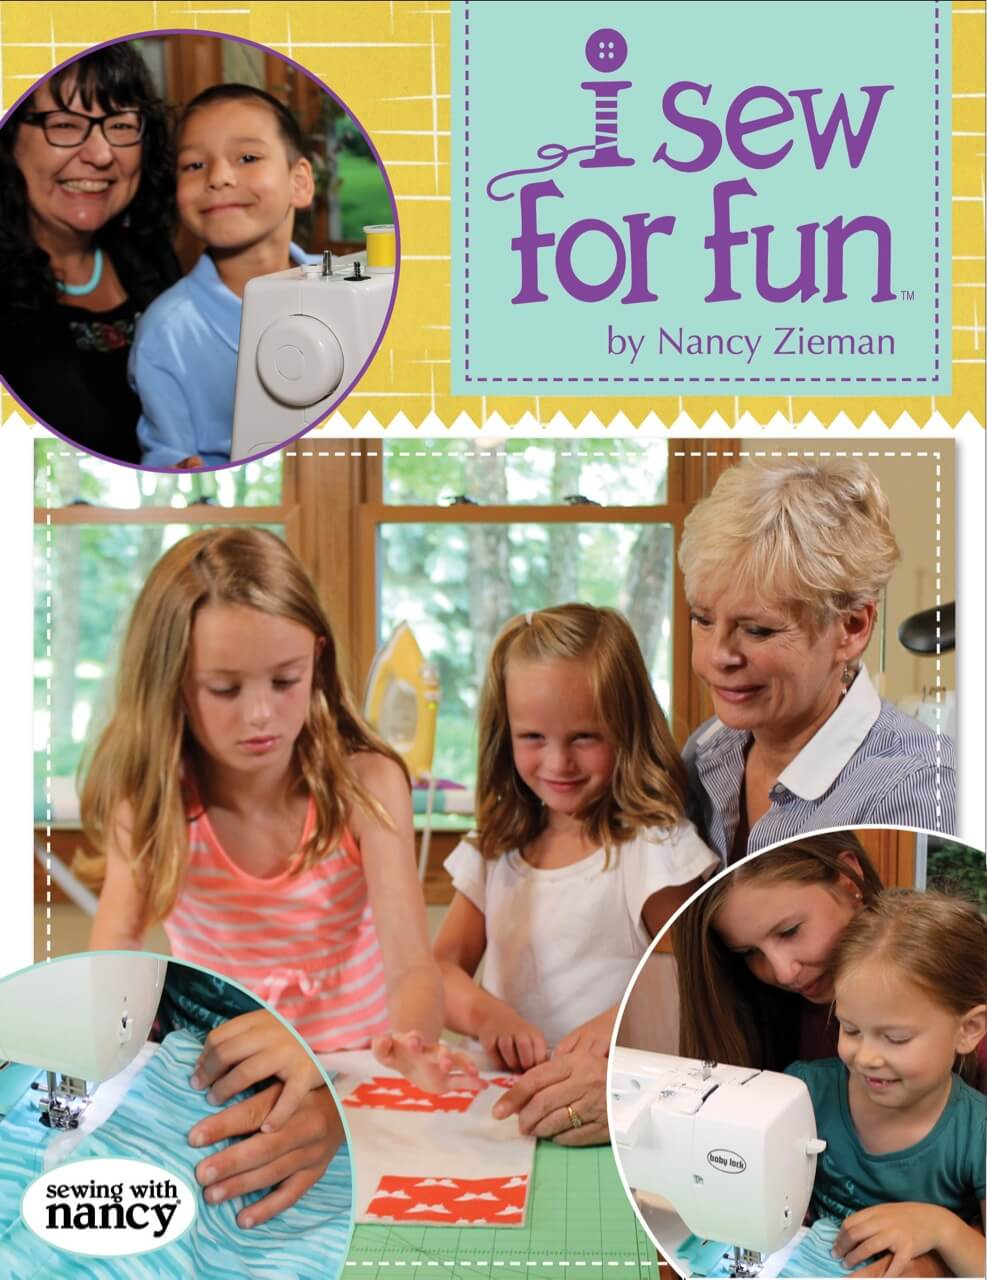 Nancy Zieman's I Sew For Fun